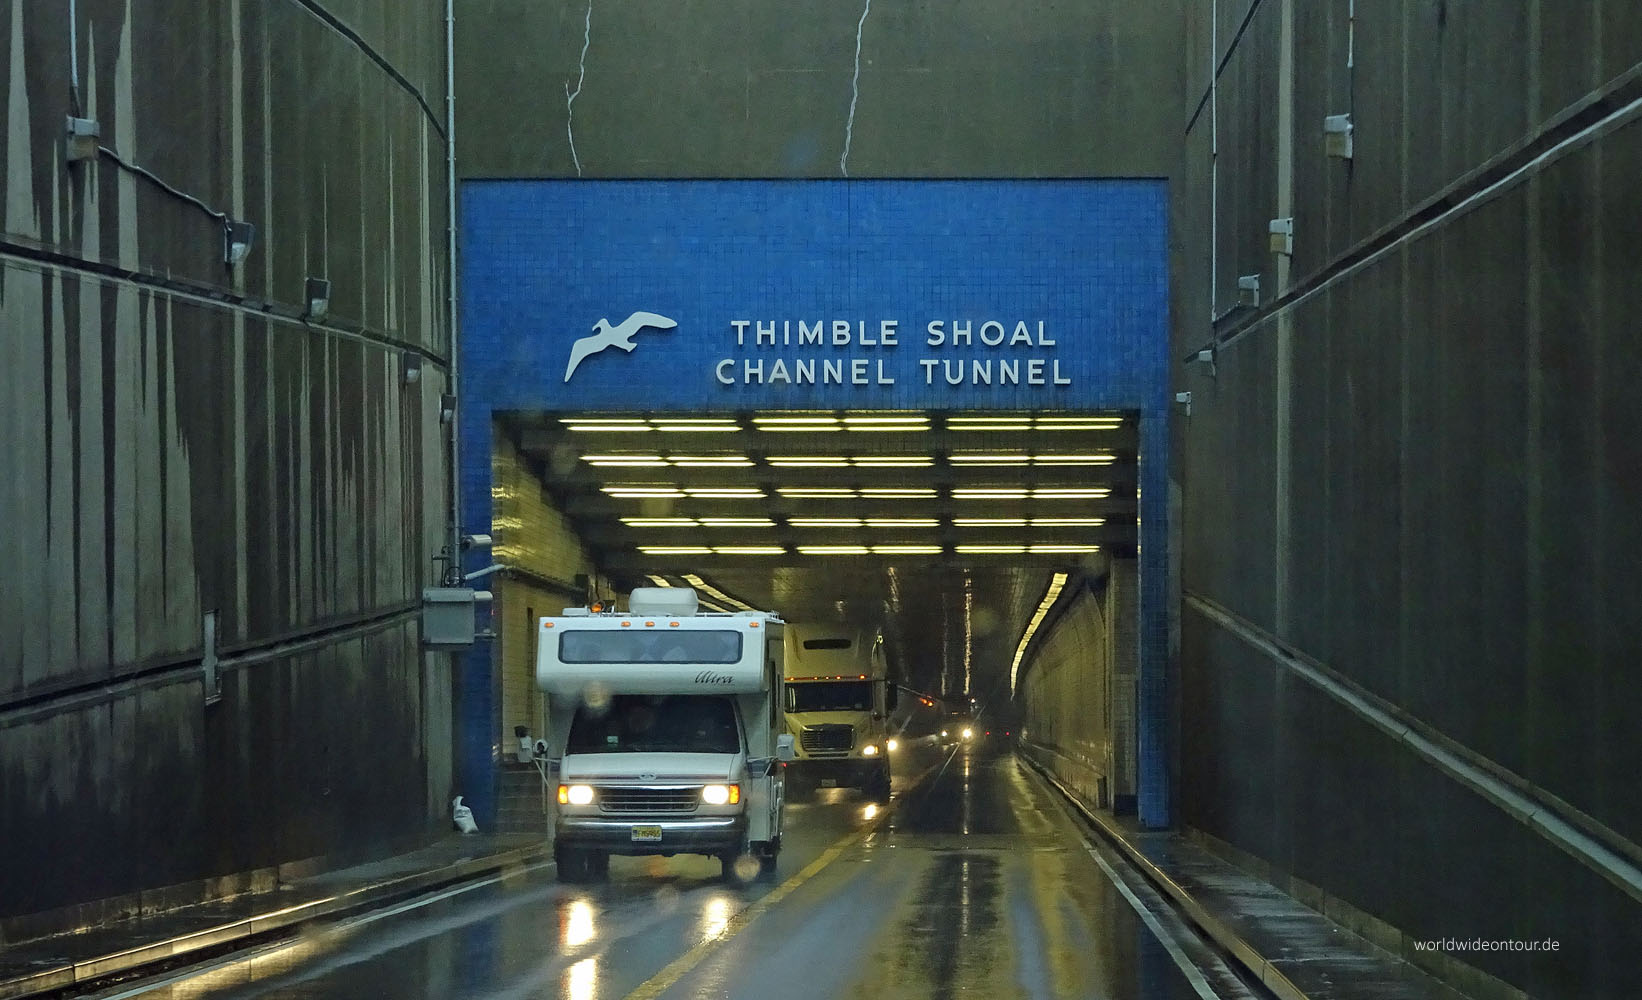 Timble Shoal Channel Tunnel sab